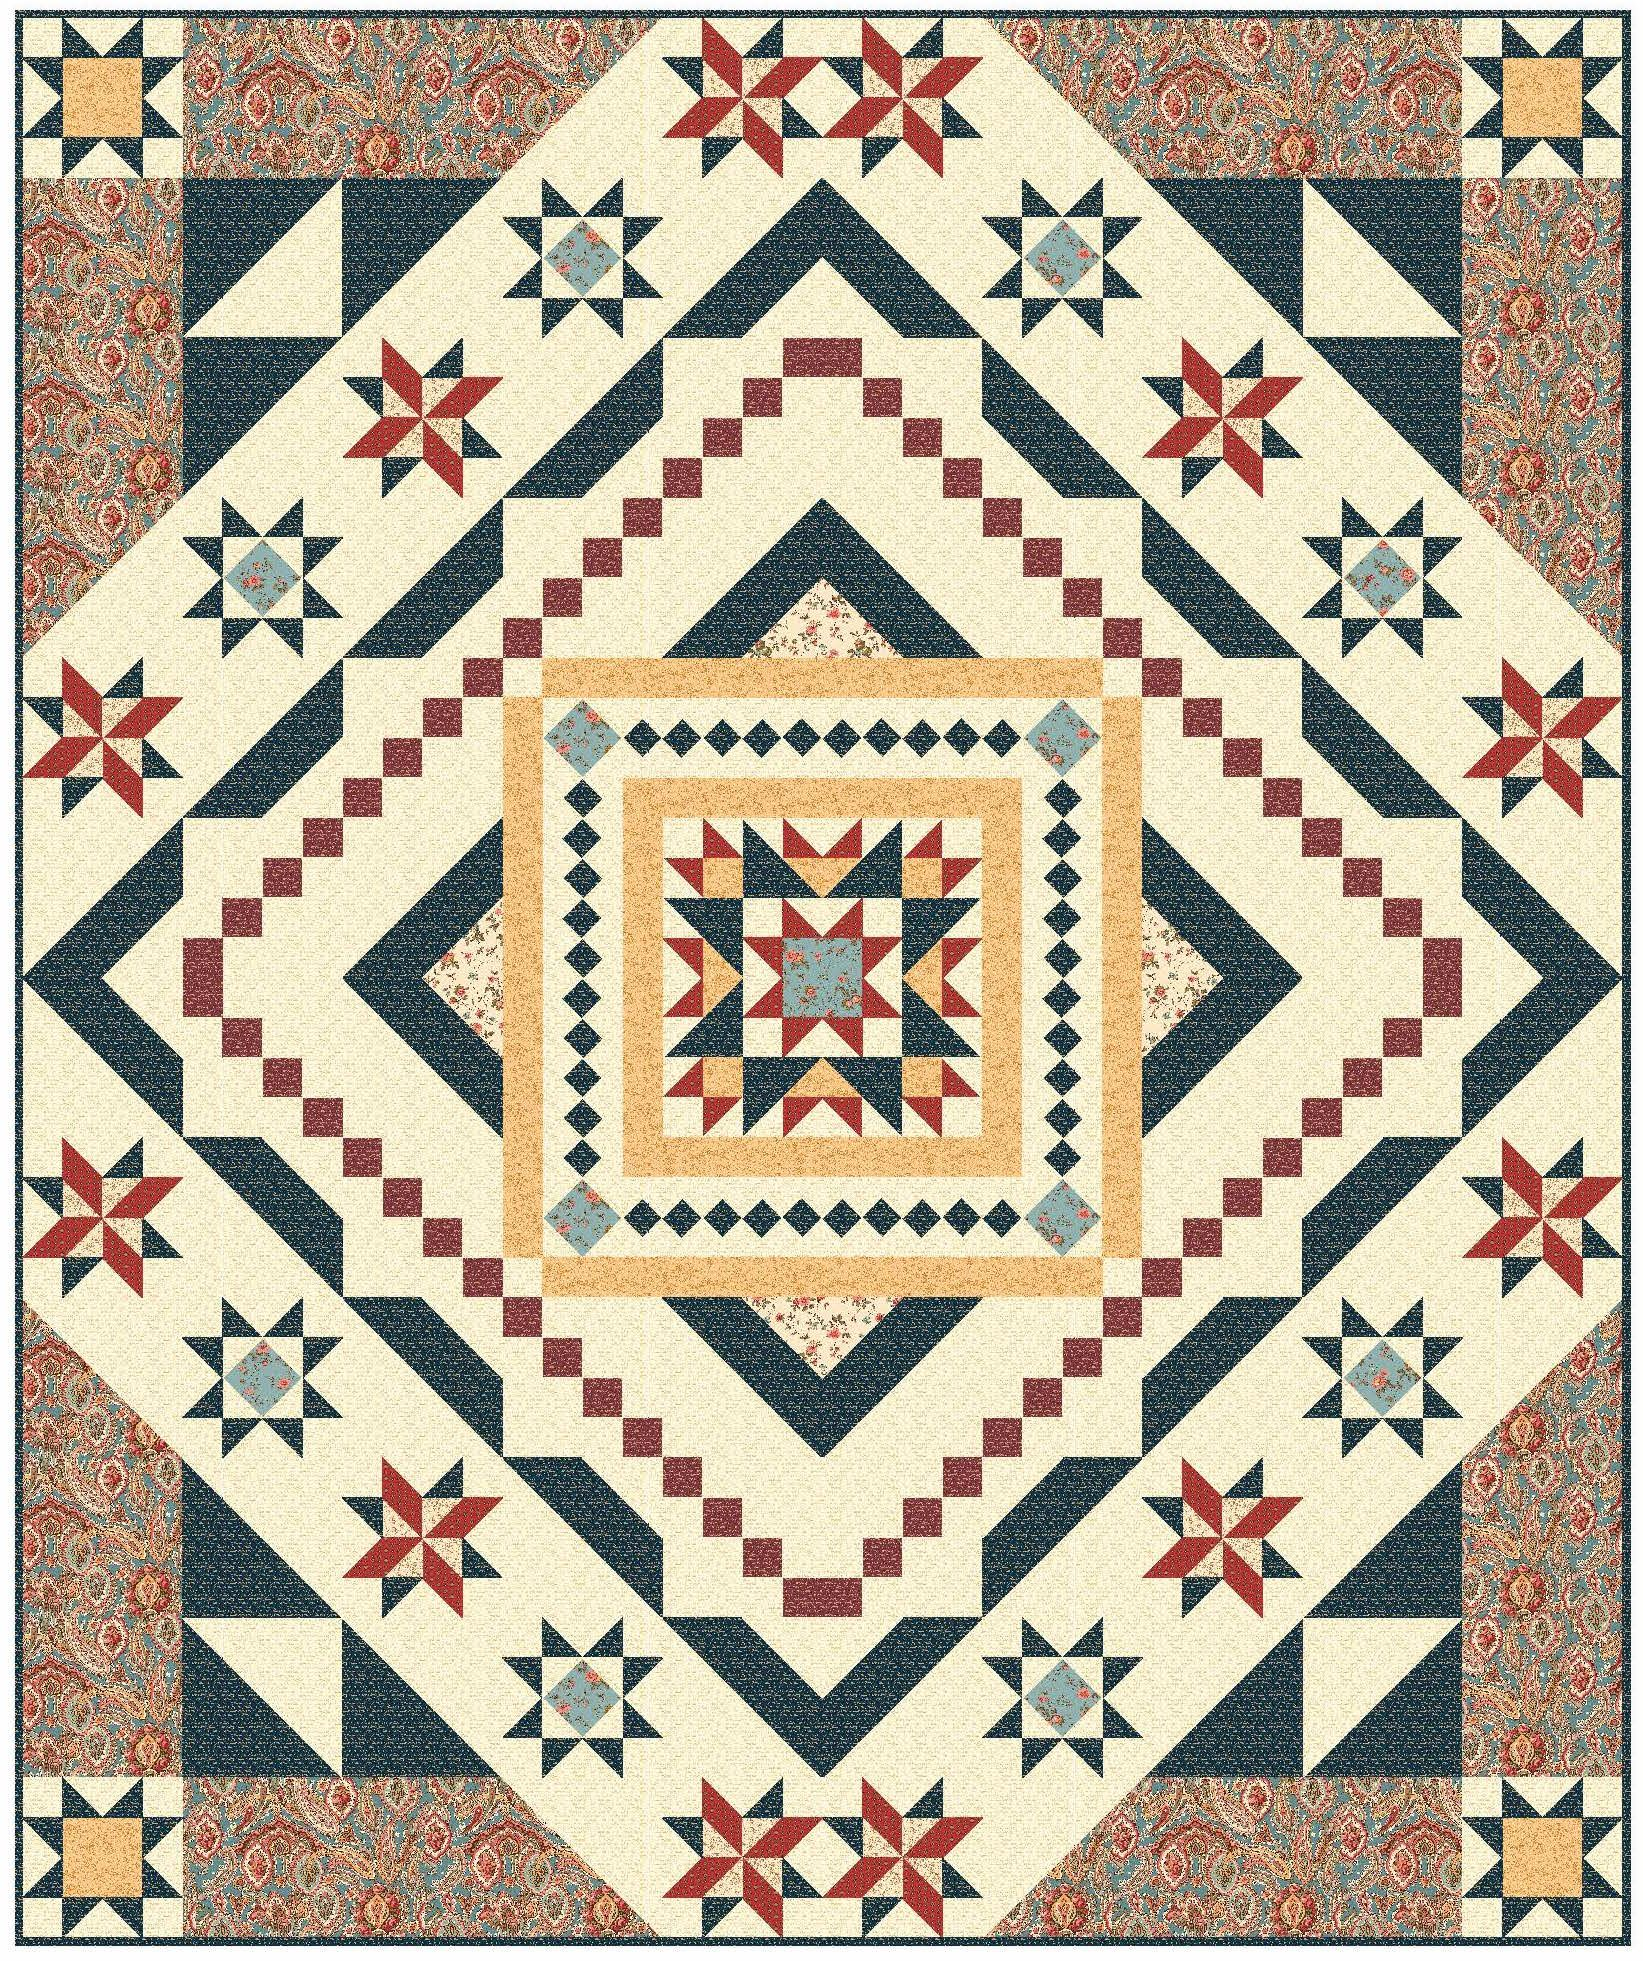 Essex Block of the Month quilt program: This queen-size design ... : quilt program - Adamdwight.com